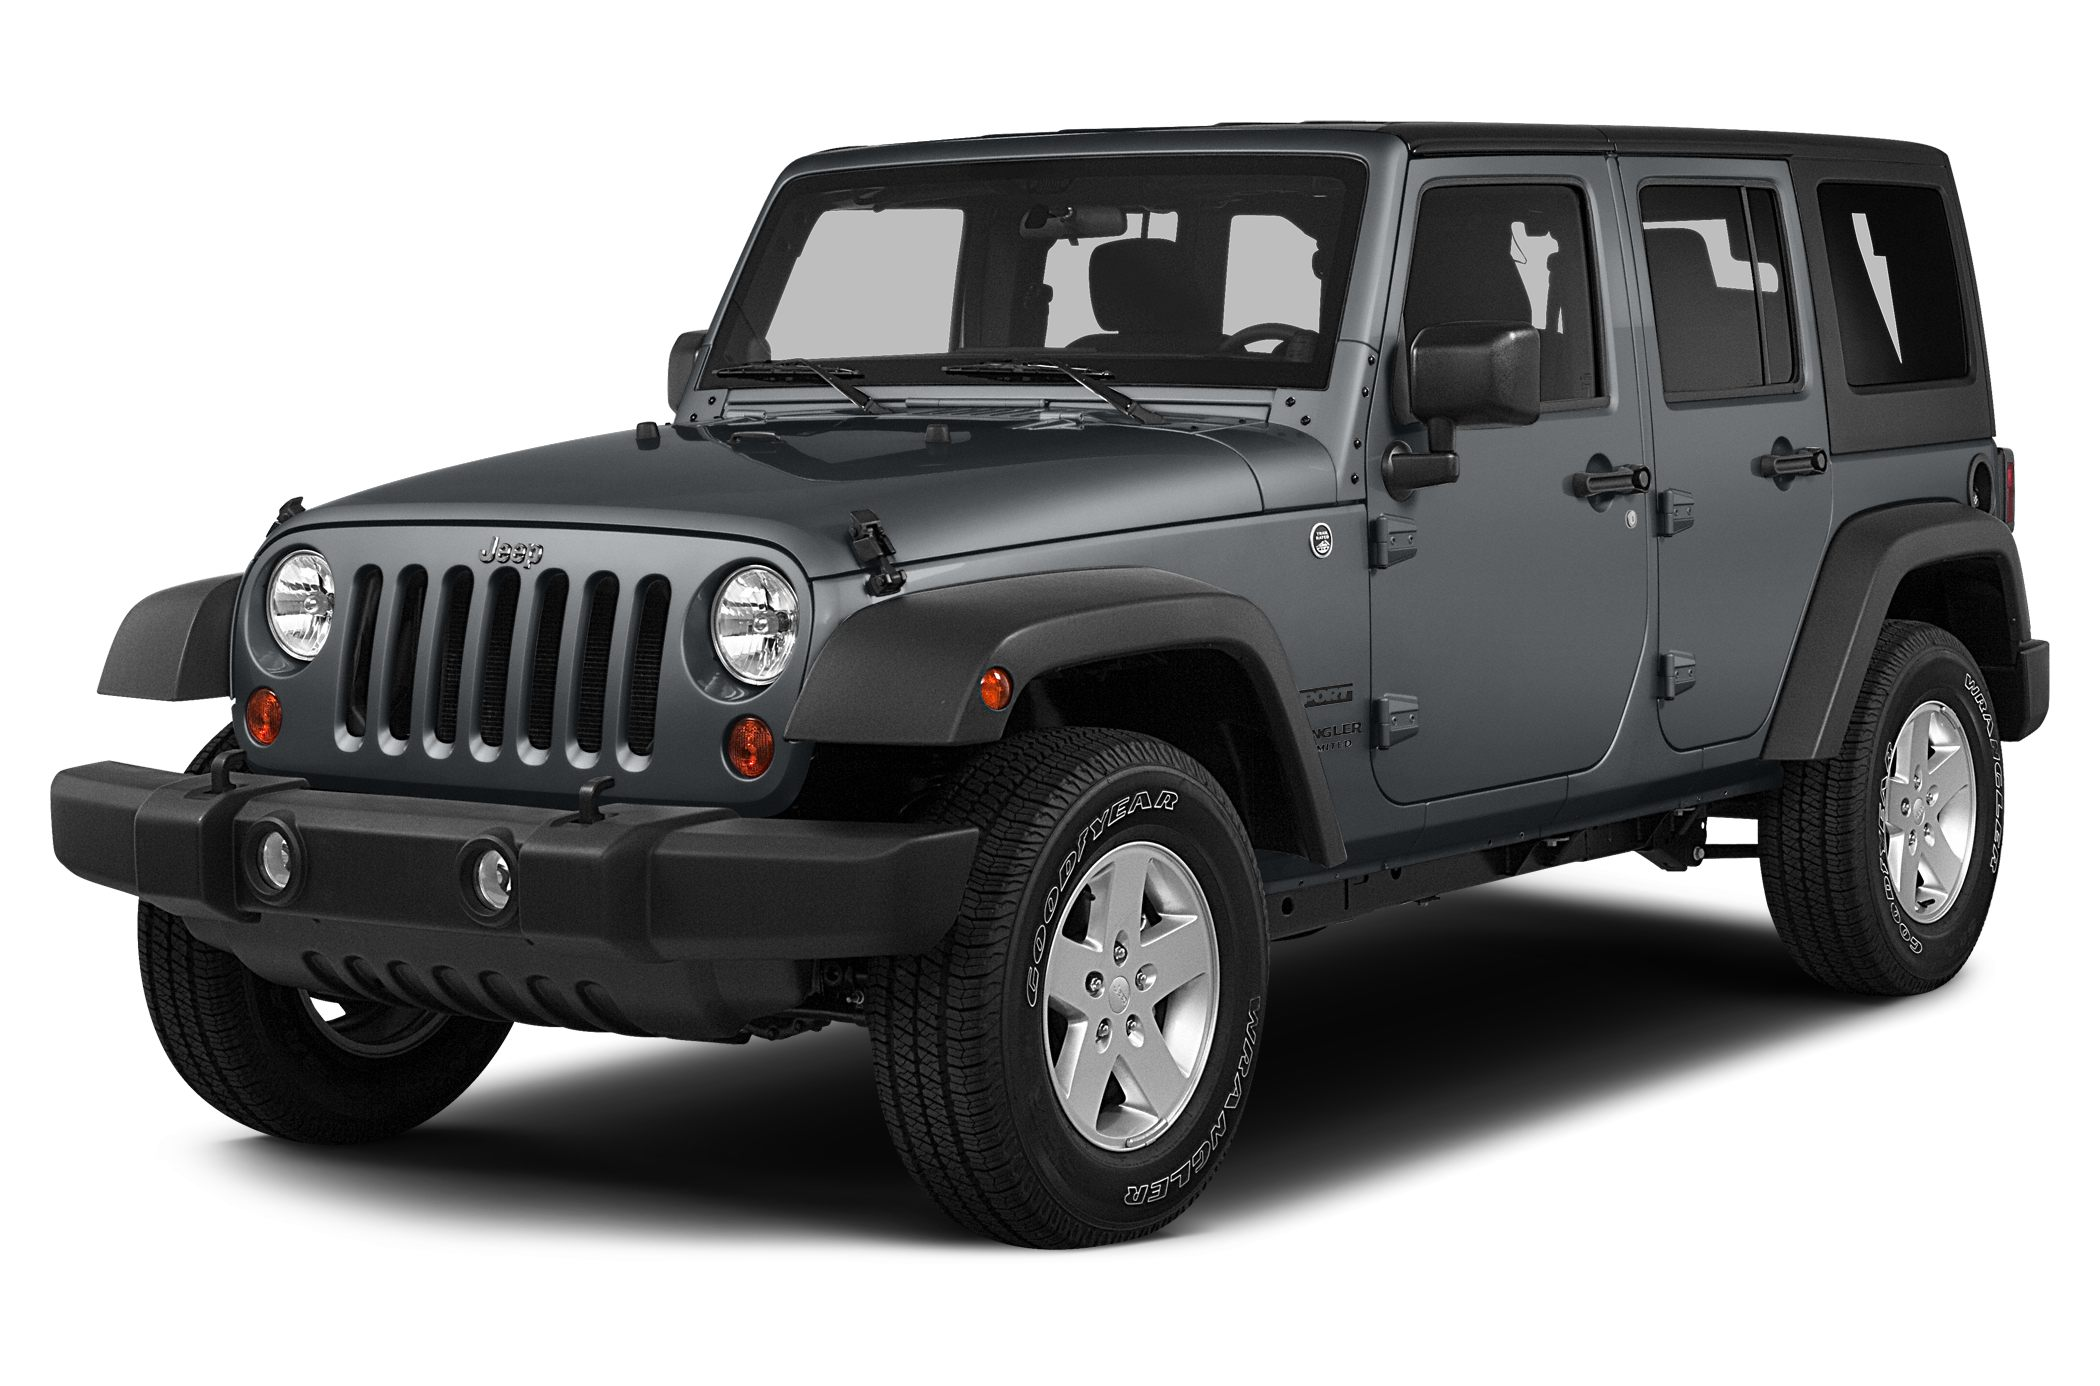 2015 Jeep Wrangler Unlimited Sahara SUV for sale in Watertown for $40,595 with 0 miles.